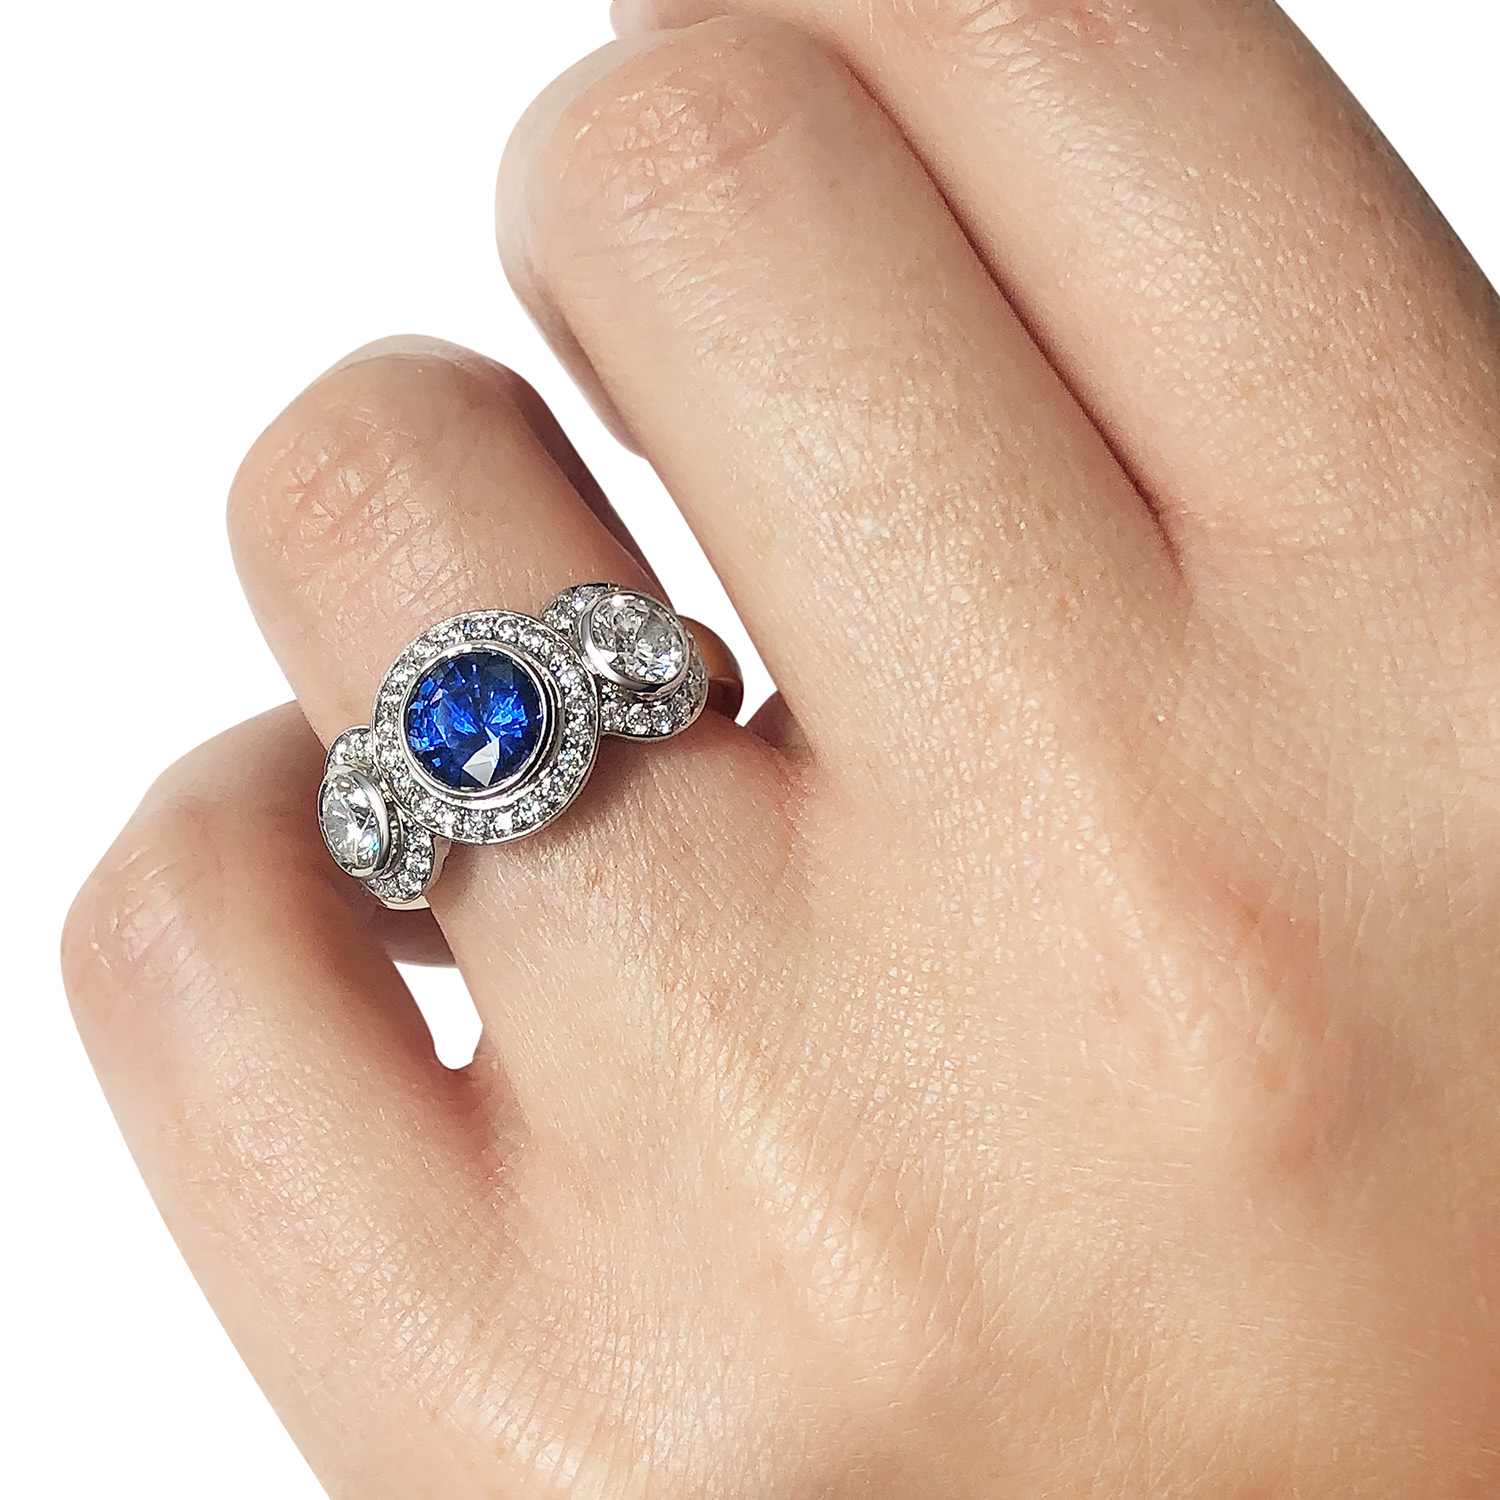 Bespoke sapphire and diamond three-stone halo ring mounted in 18ct white and yellow gold on hand